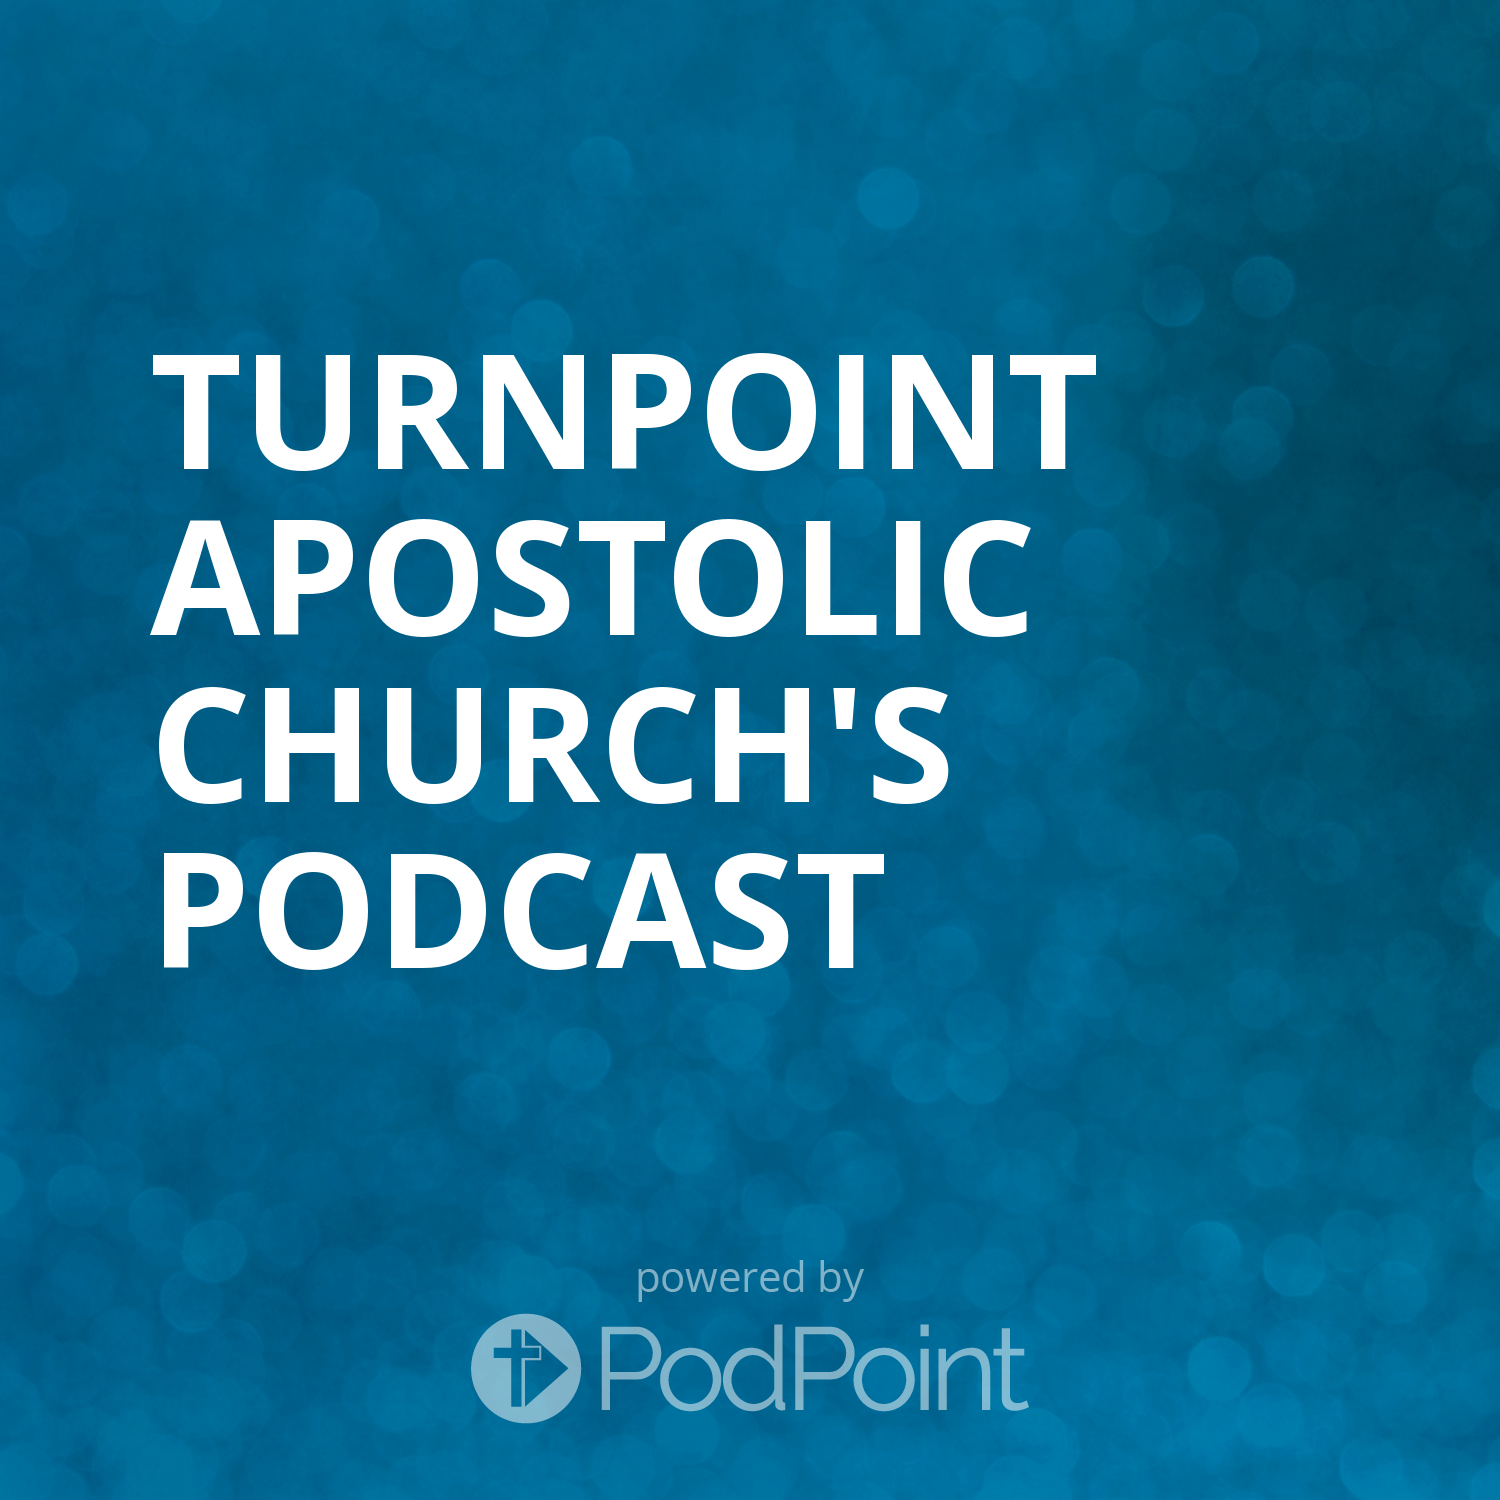 TurnPoint Apostolic Church's Podcast